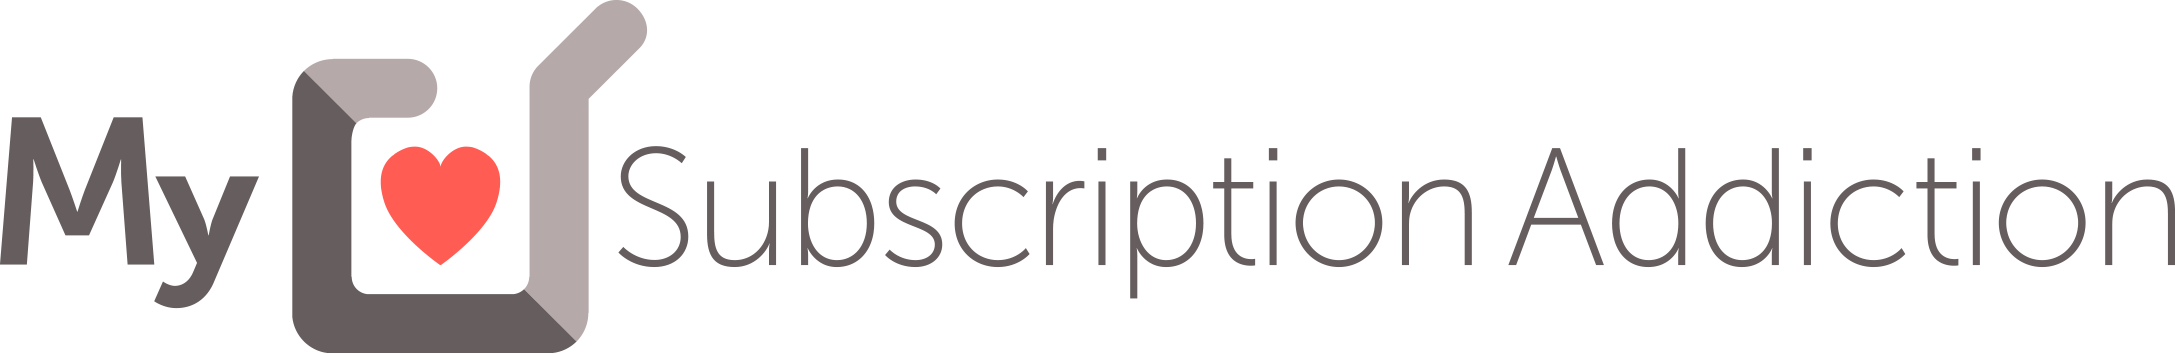 my subscription addiction logo